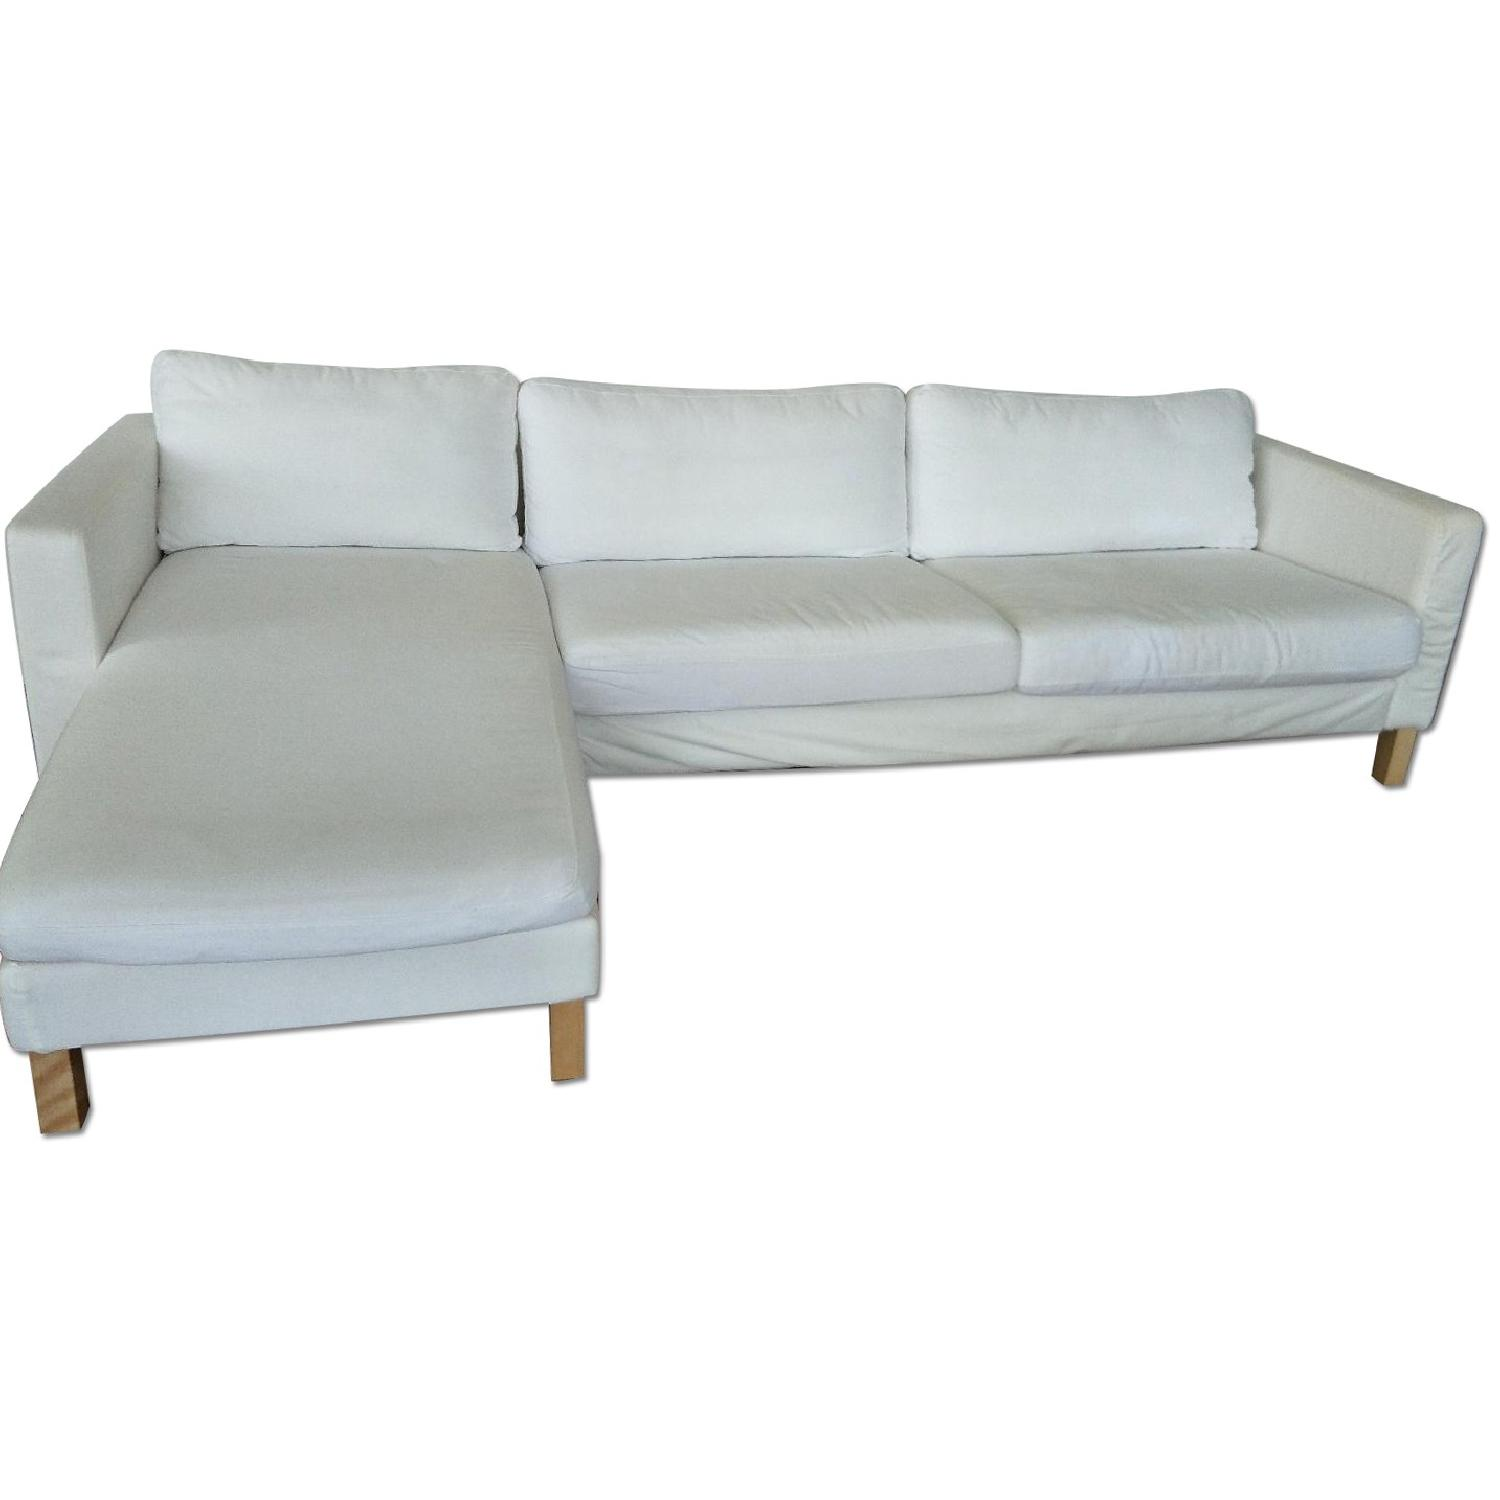 Ikea Les Chaises Ikea Karlstad Sectional Sofa W Chaise Lounge